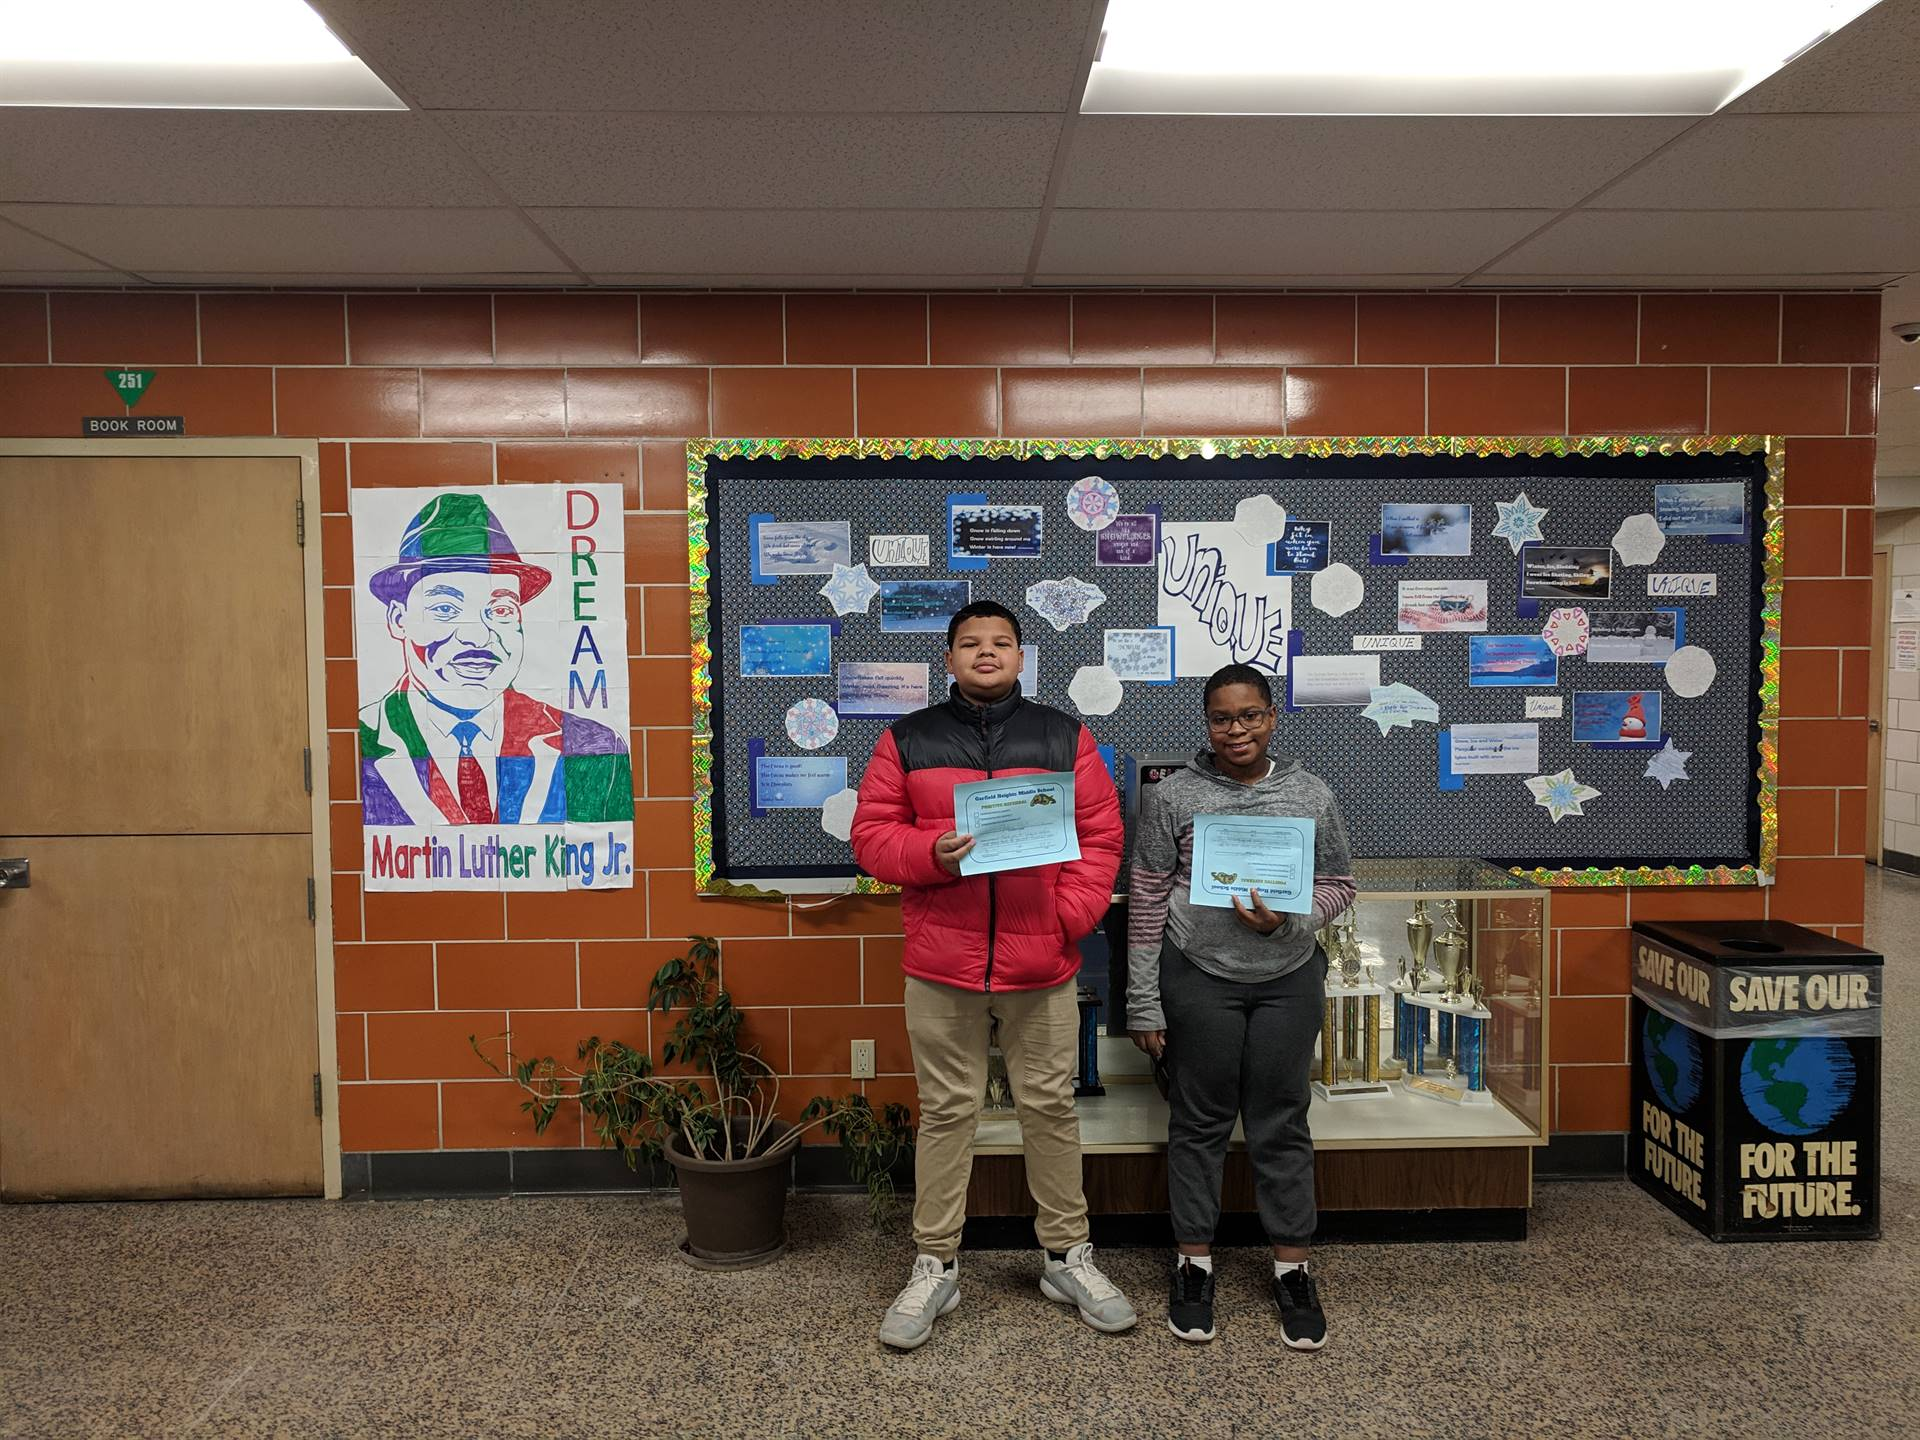 Two students with Positive Referrals